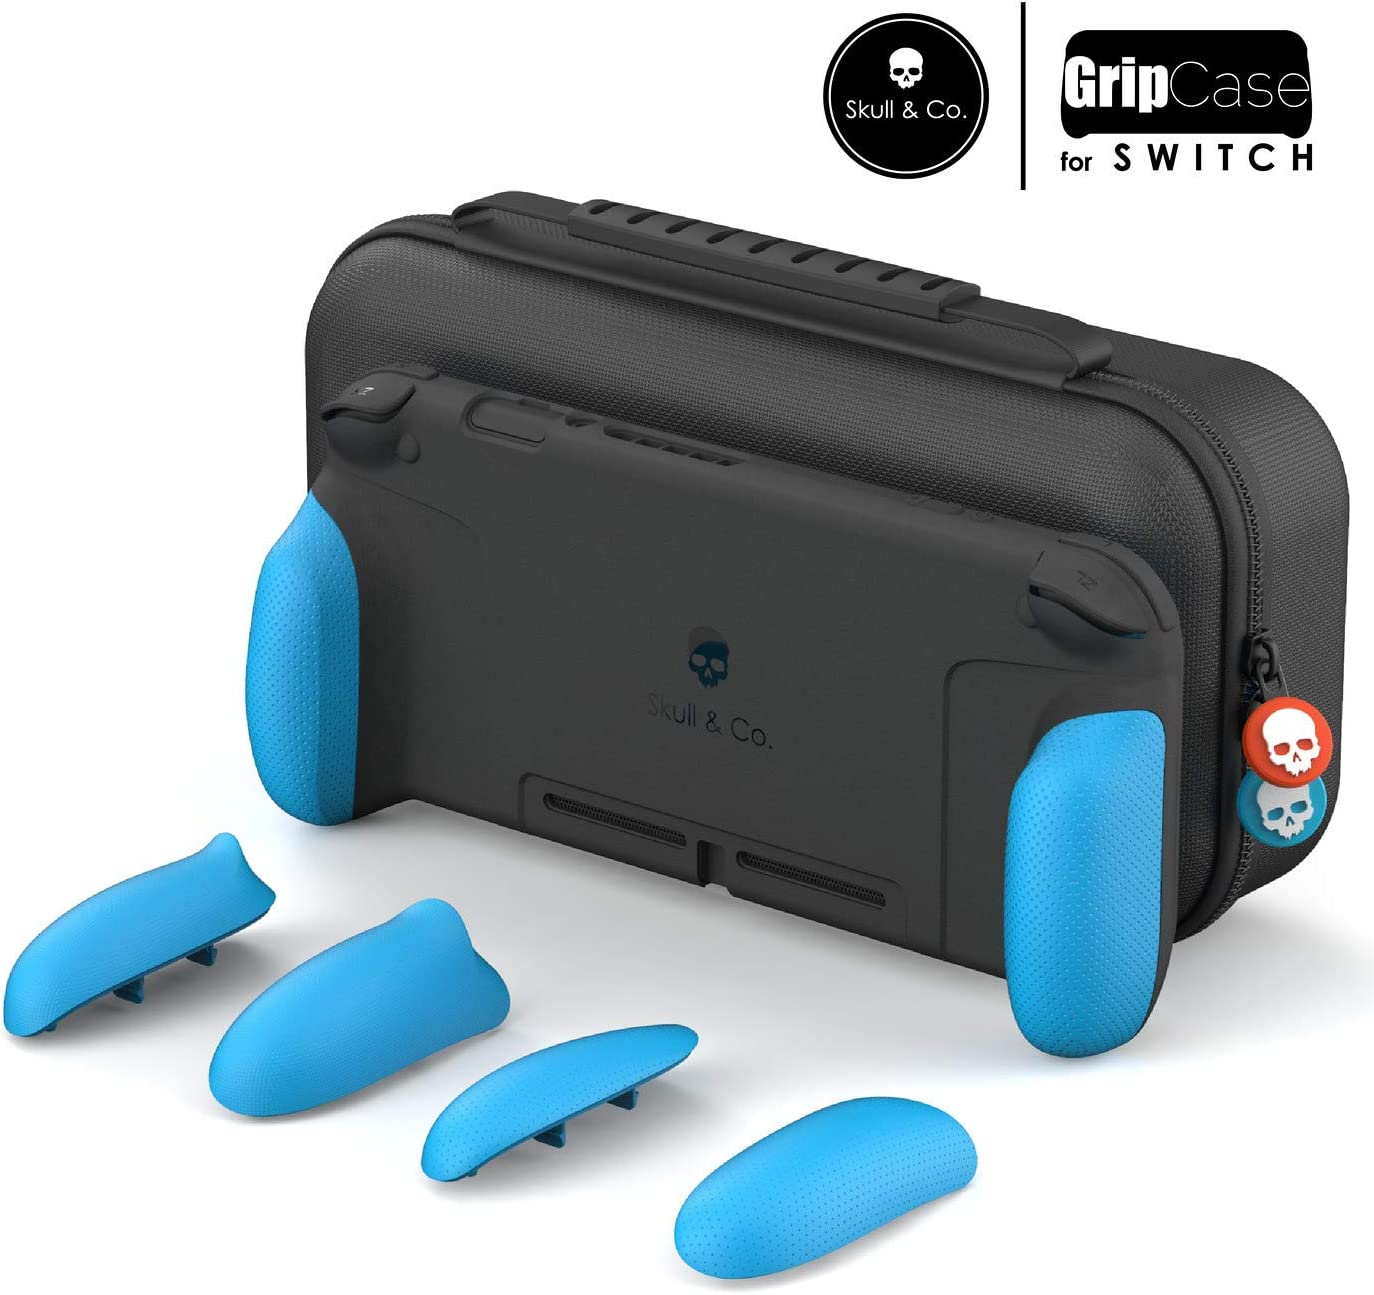 Skull & Co. GripCase Set: A Dockable Protective Case with Replaceable Grips [to fit All Hands Sizes] for Nintendo Switch - Double Neon Blue